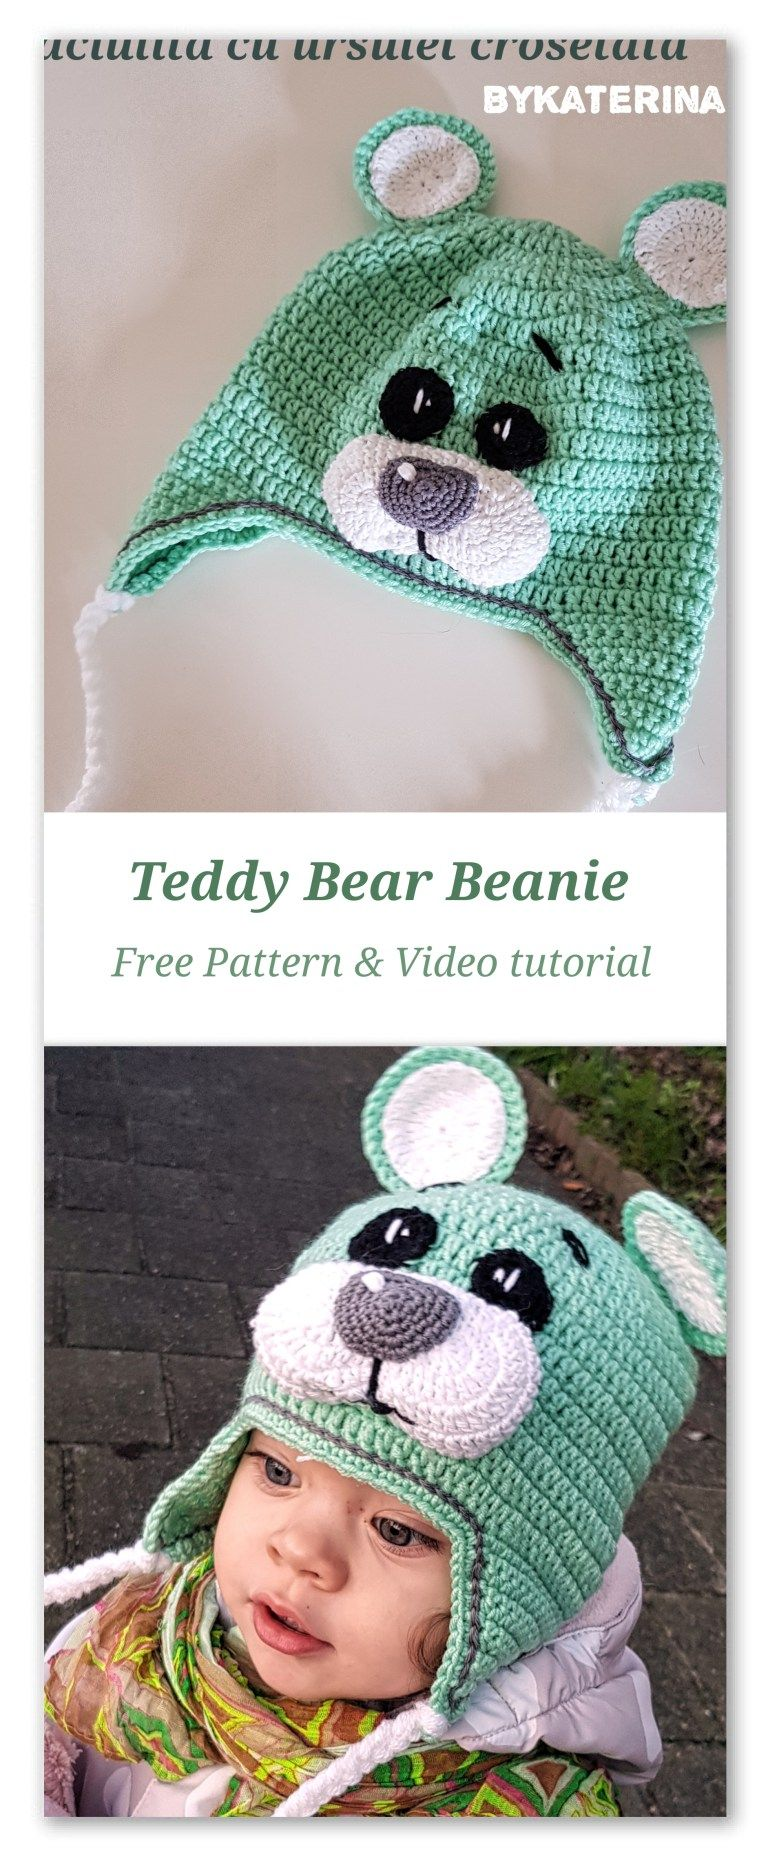 Teddy Bear Beanie Free Pattern   Baby shower gifts and ideas ...